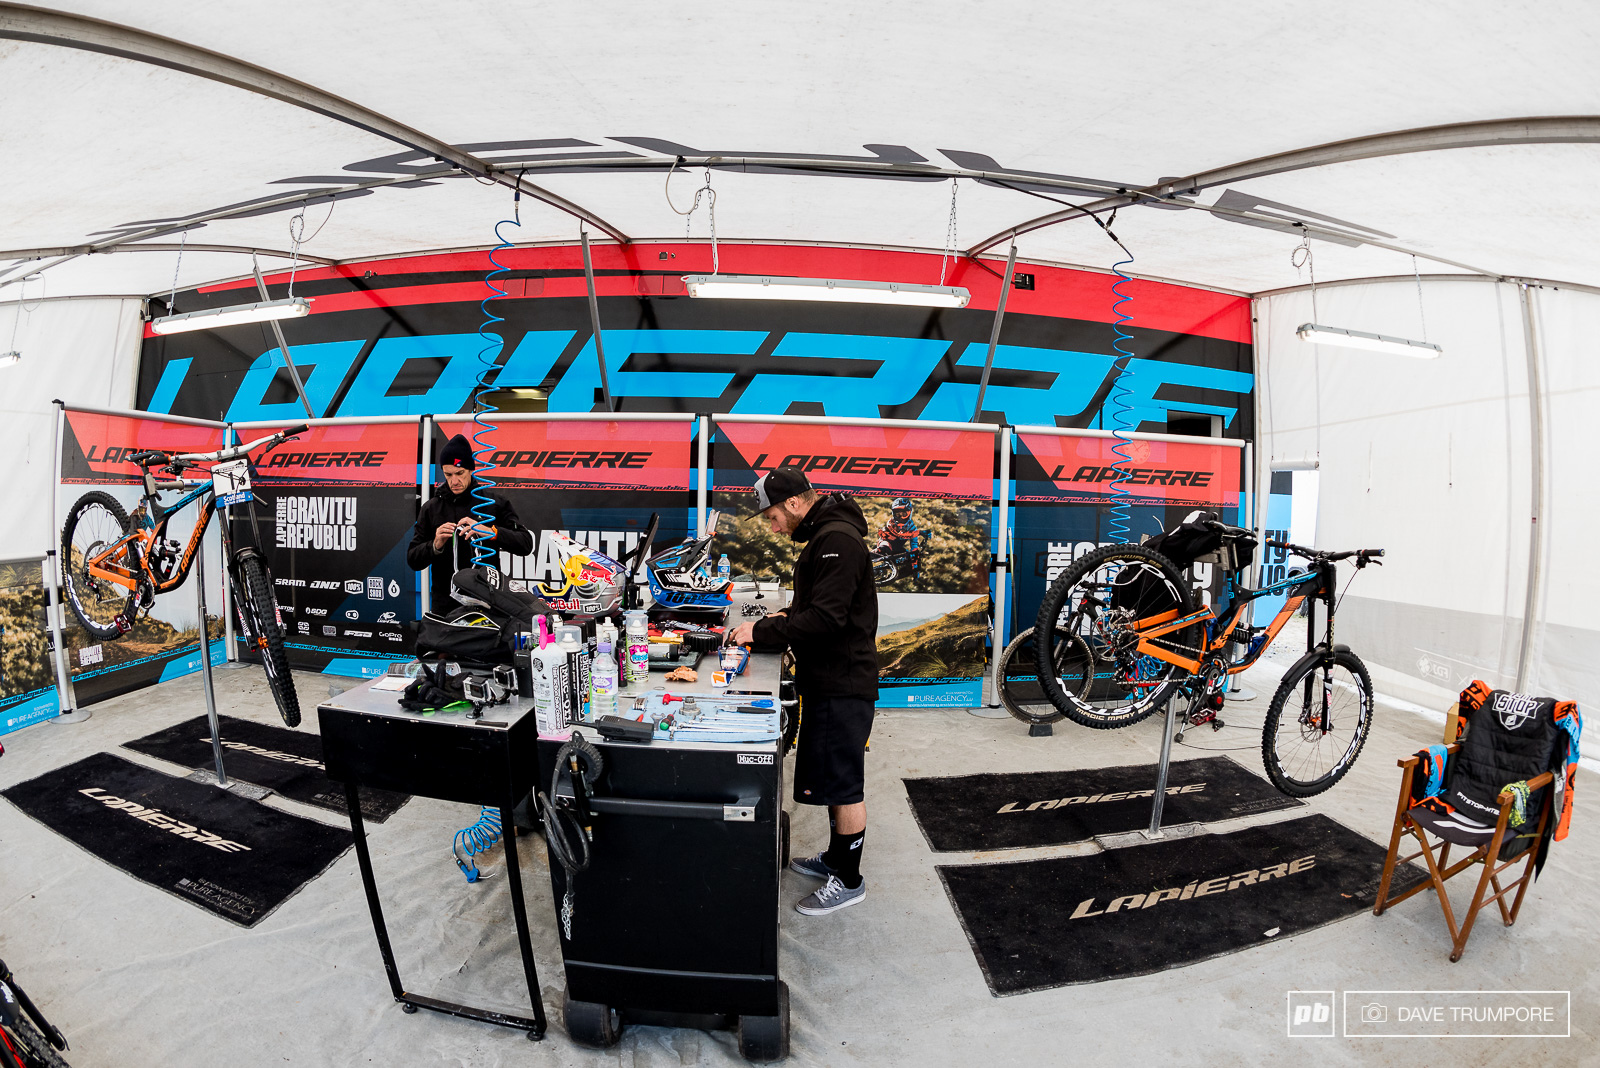 It s a smooth running operation at Lapierre.